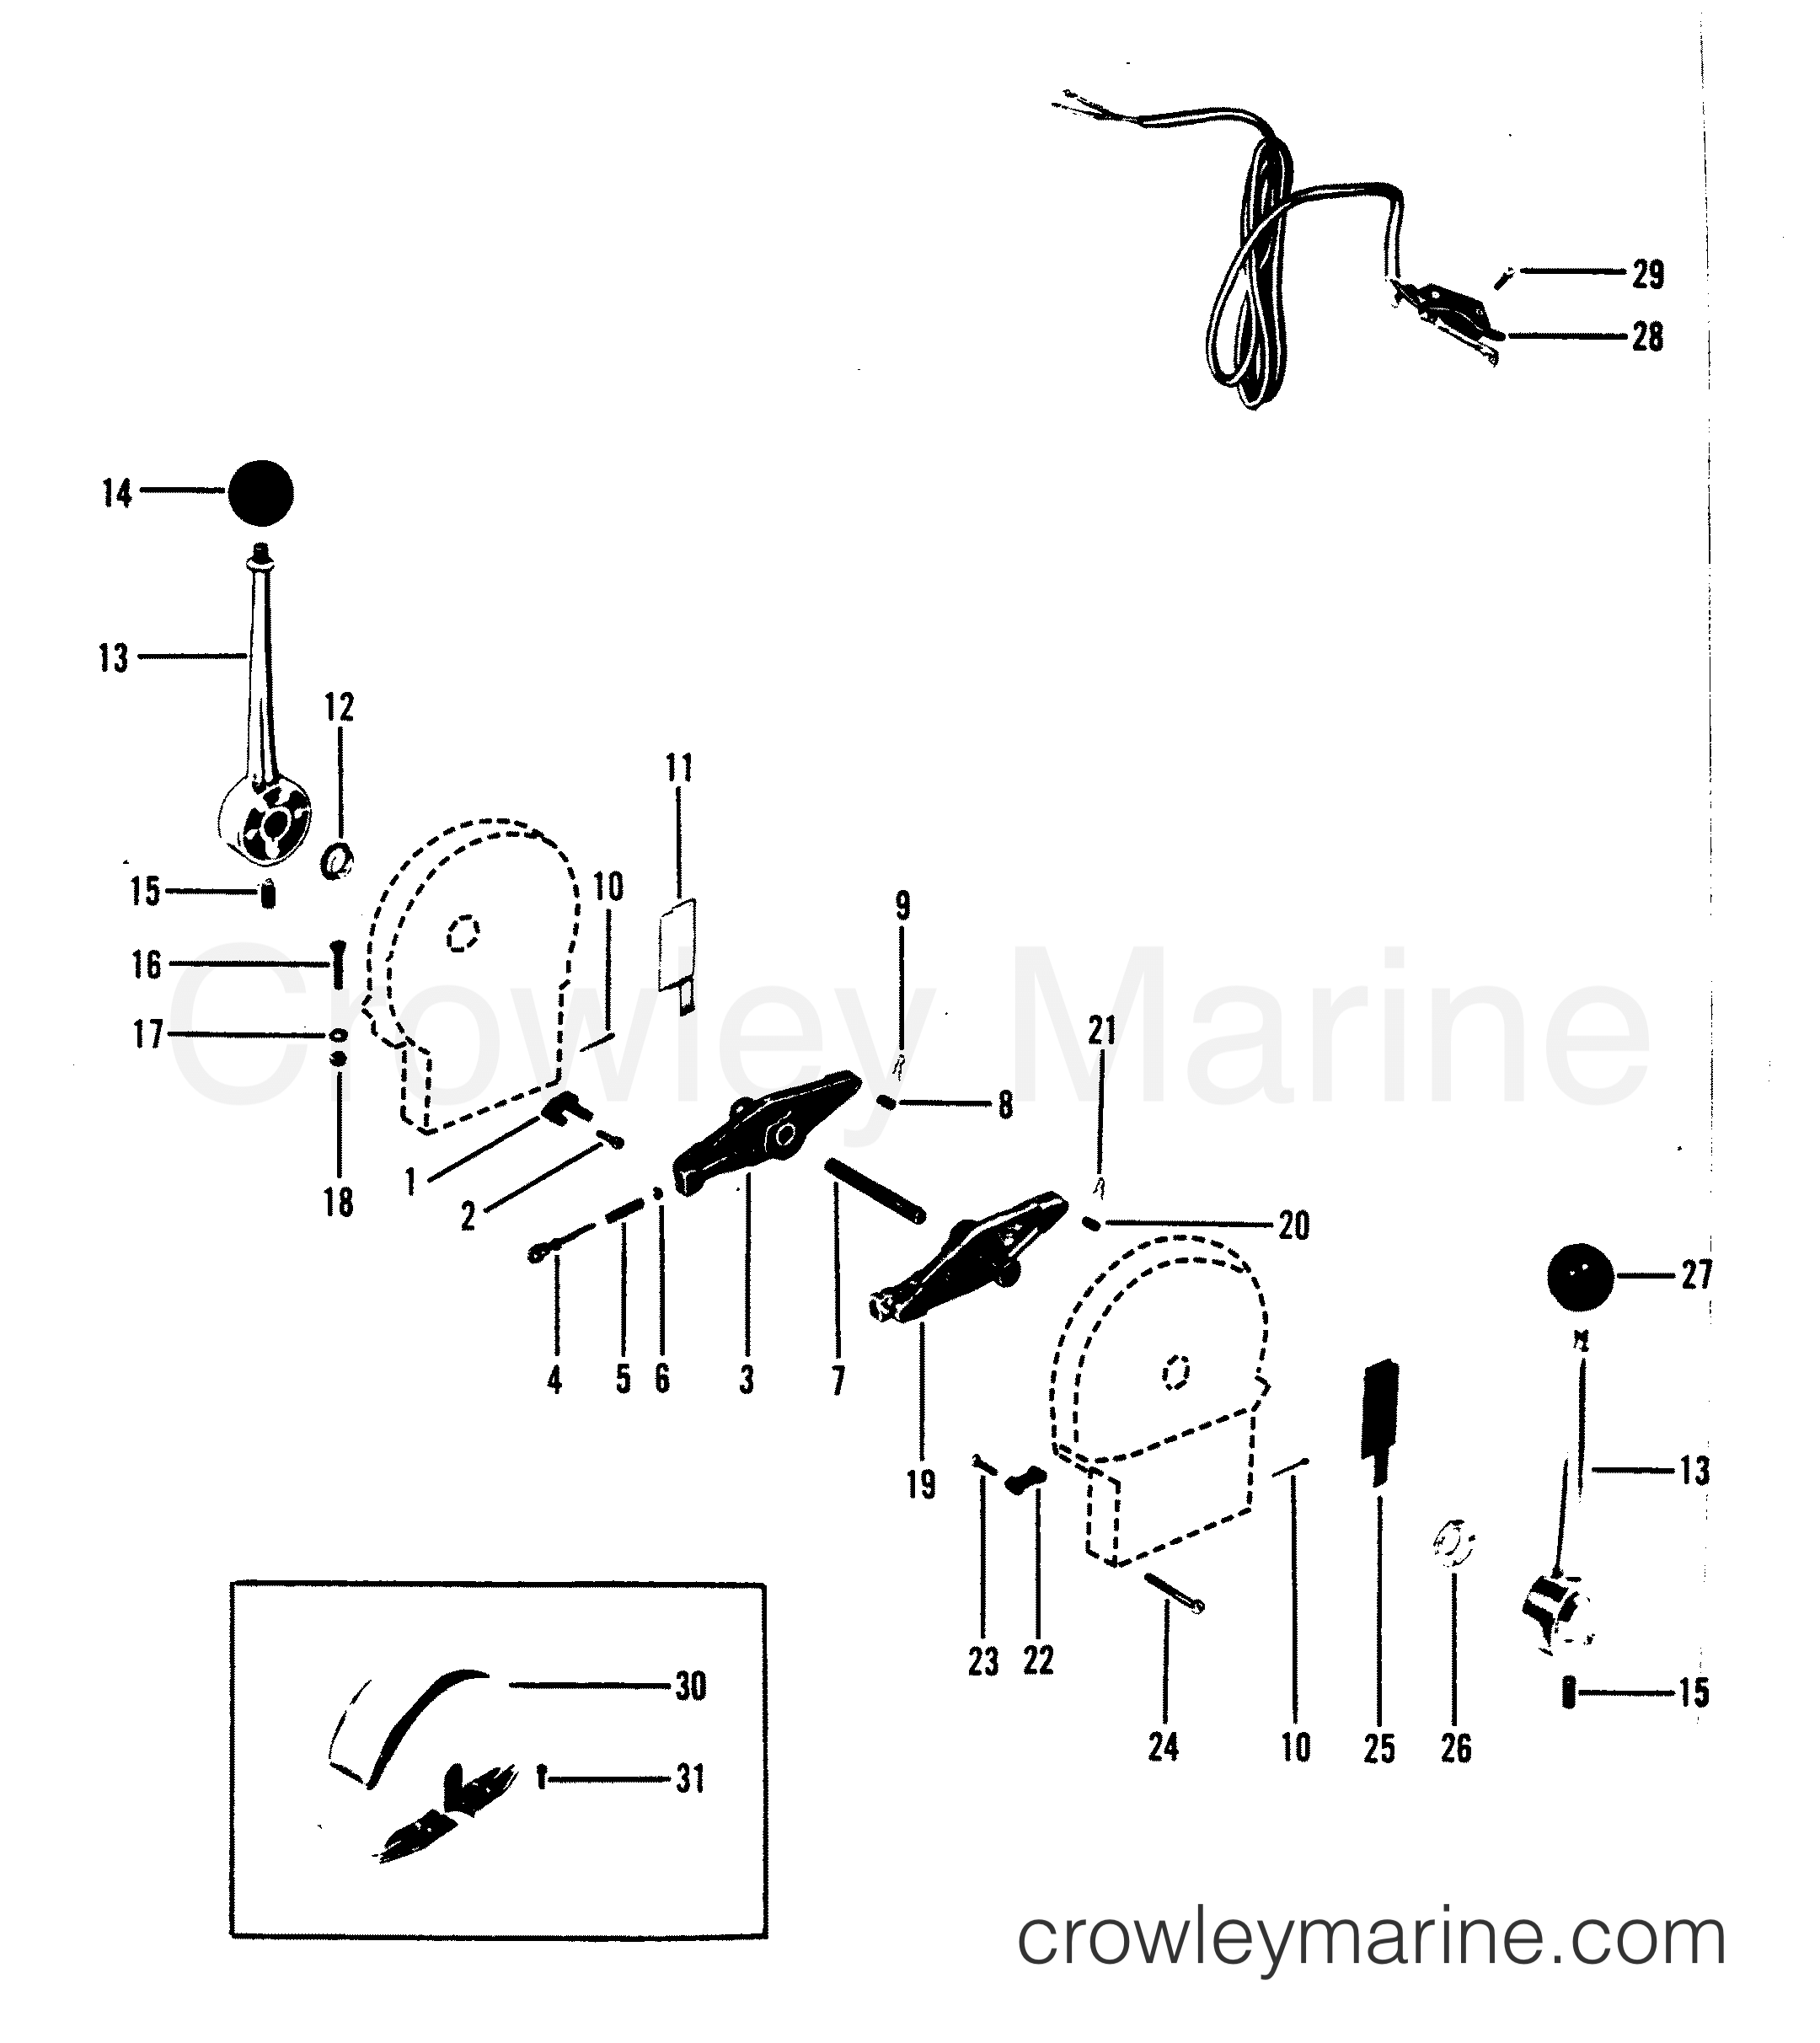 Remote Control Assembly A1